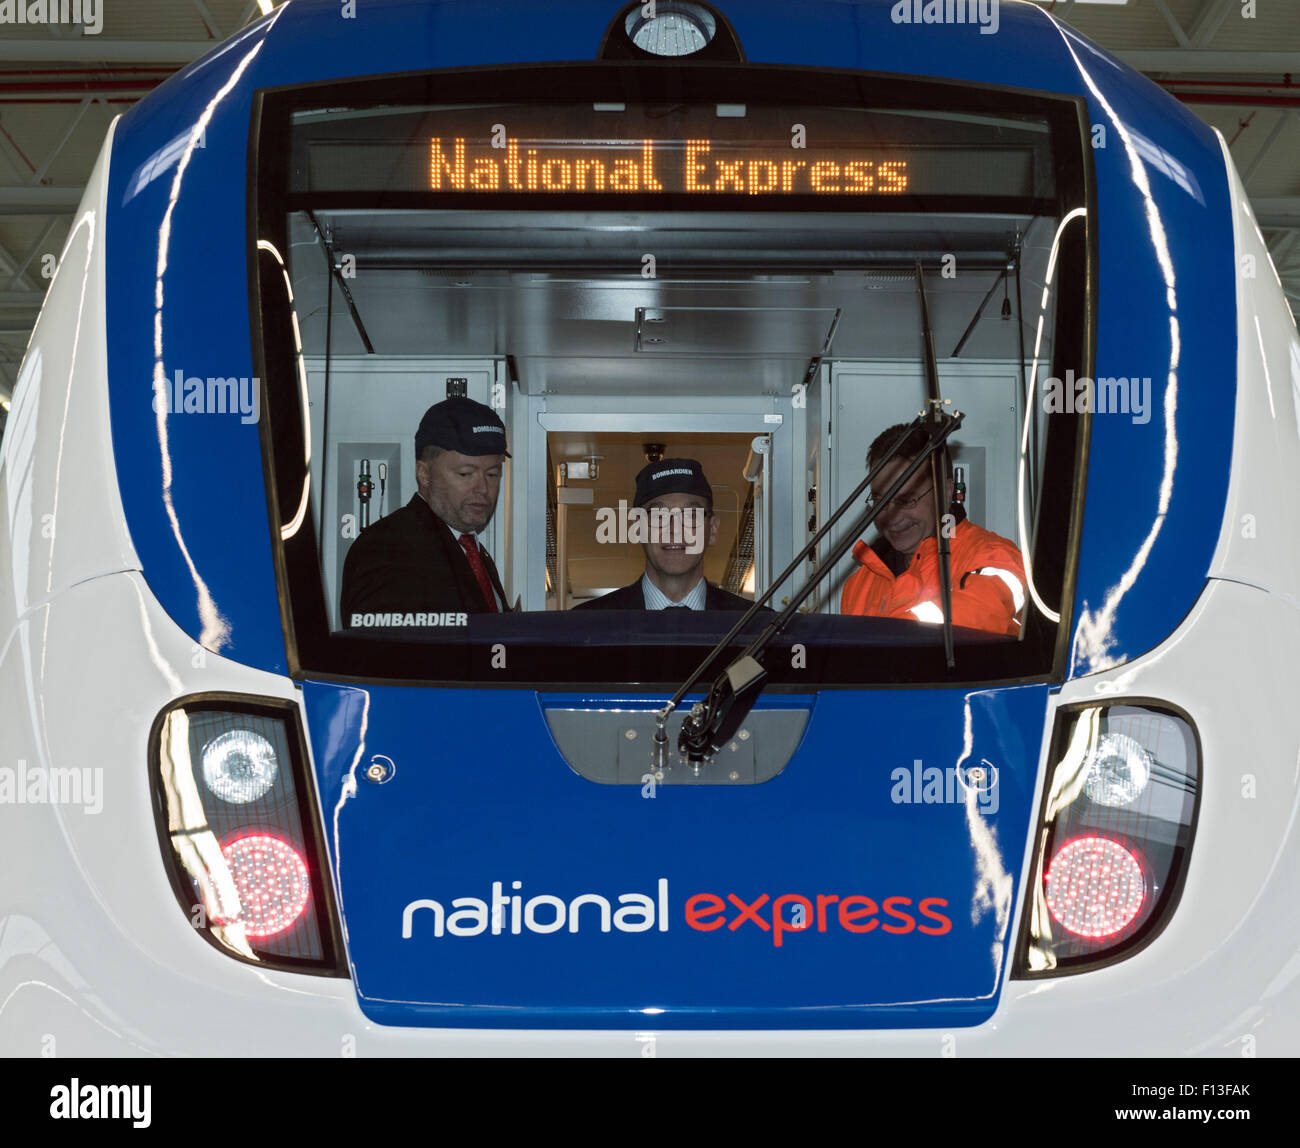 national express group stock photos national express group stock images alamy. Black Bedroom Furniture Sets. Home Design Ideas